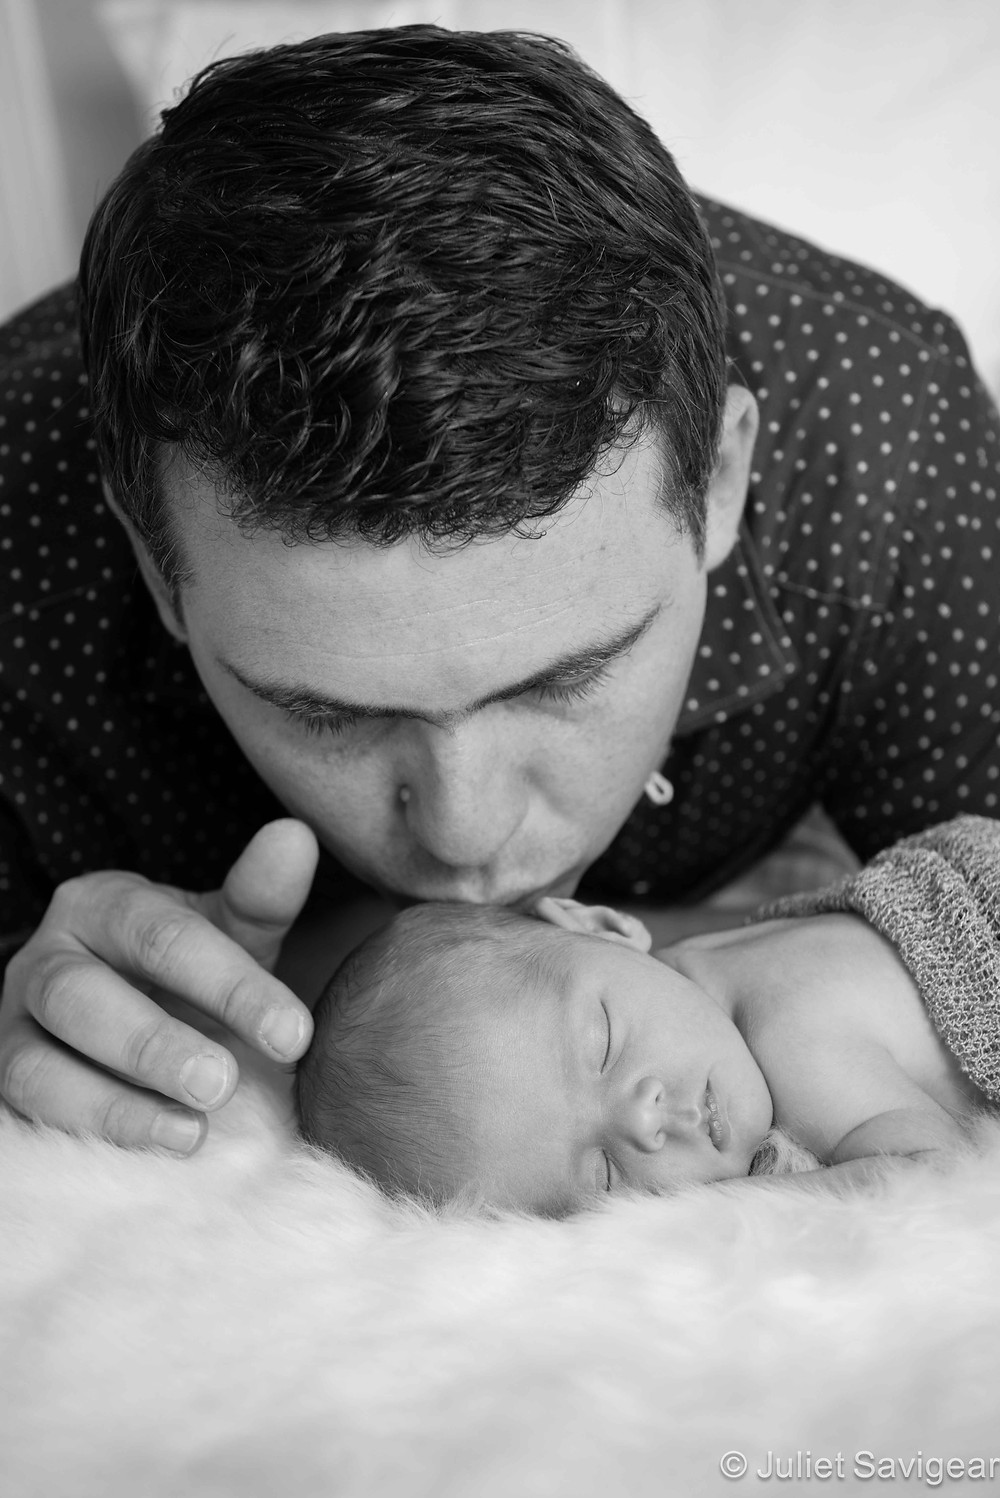 Daddy's Boy - Newborn Baby & Family Photography, Tooting